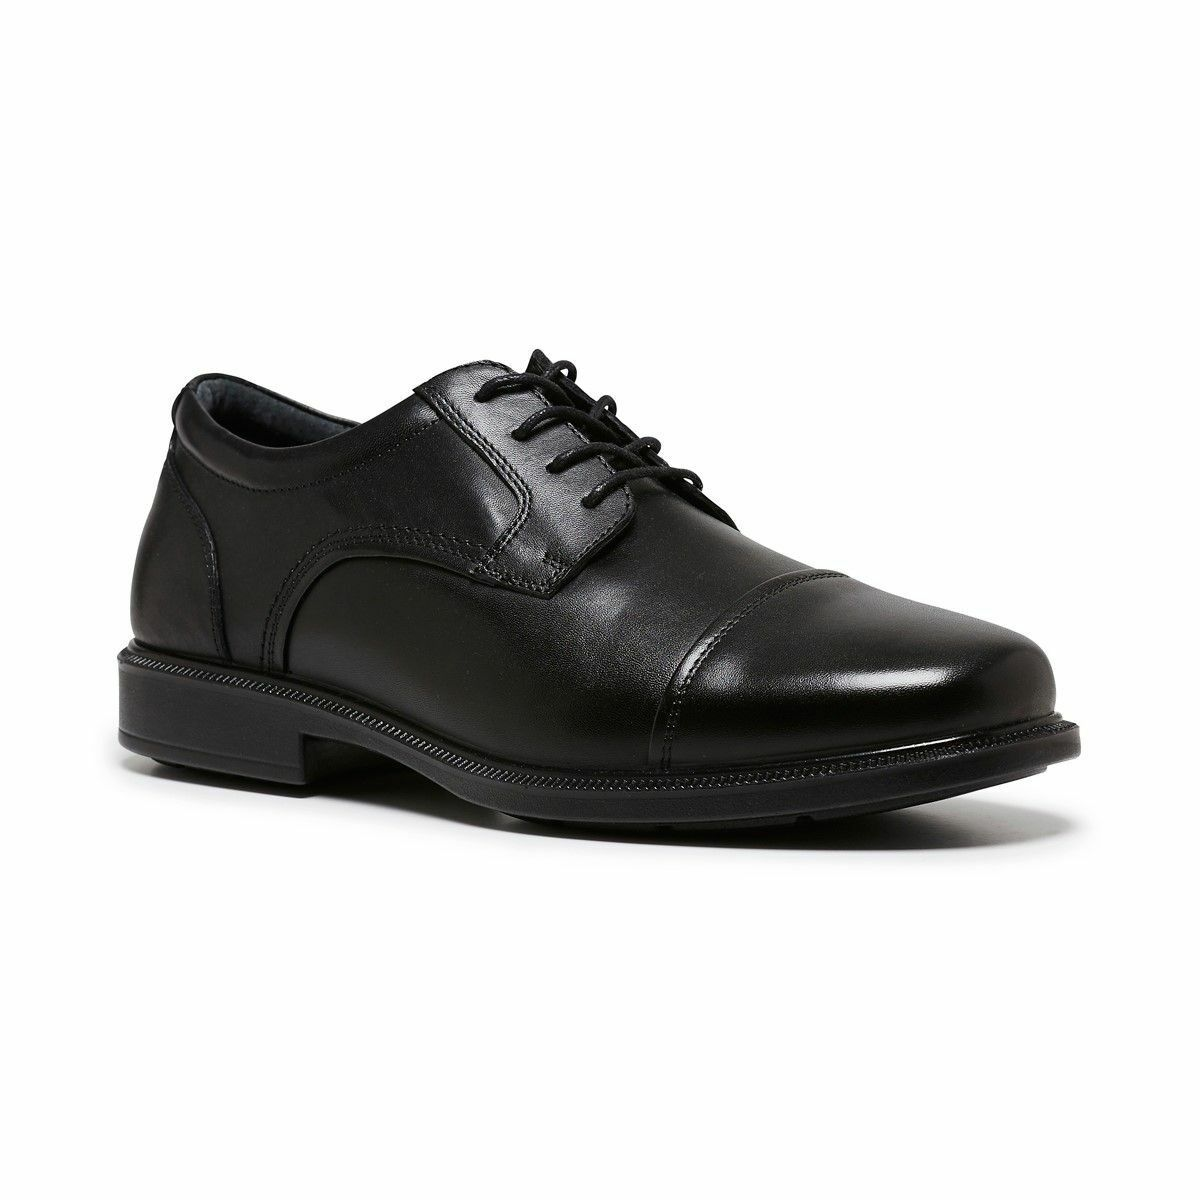 e9352073c12 MENS HUSH PUPPIES PETER BLACK TAN BROWN LEATHER LACE UP WORK FORMAL ...